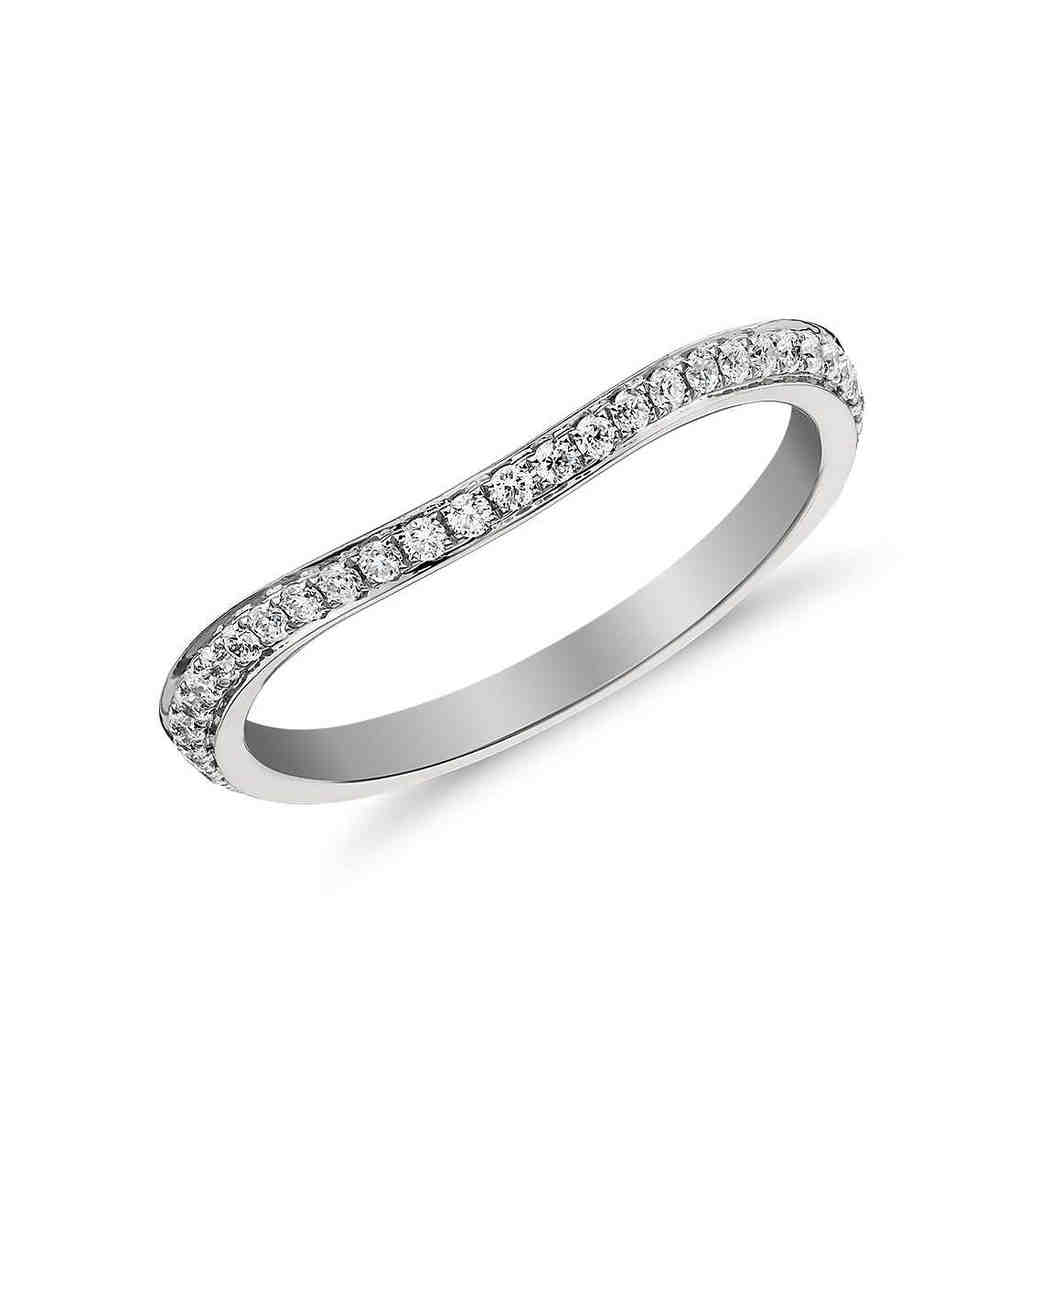 Wedding Bands That Pair Perfectly With Unique Engagement Rings  Martha  Stewart Weddings